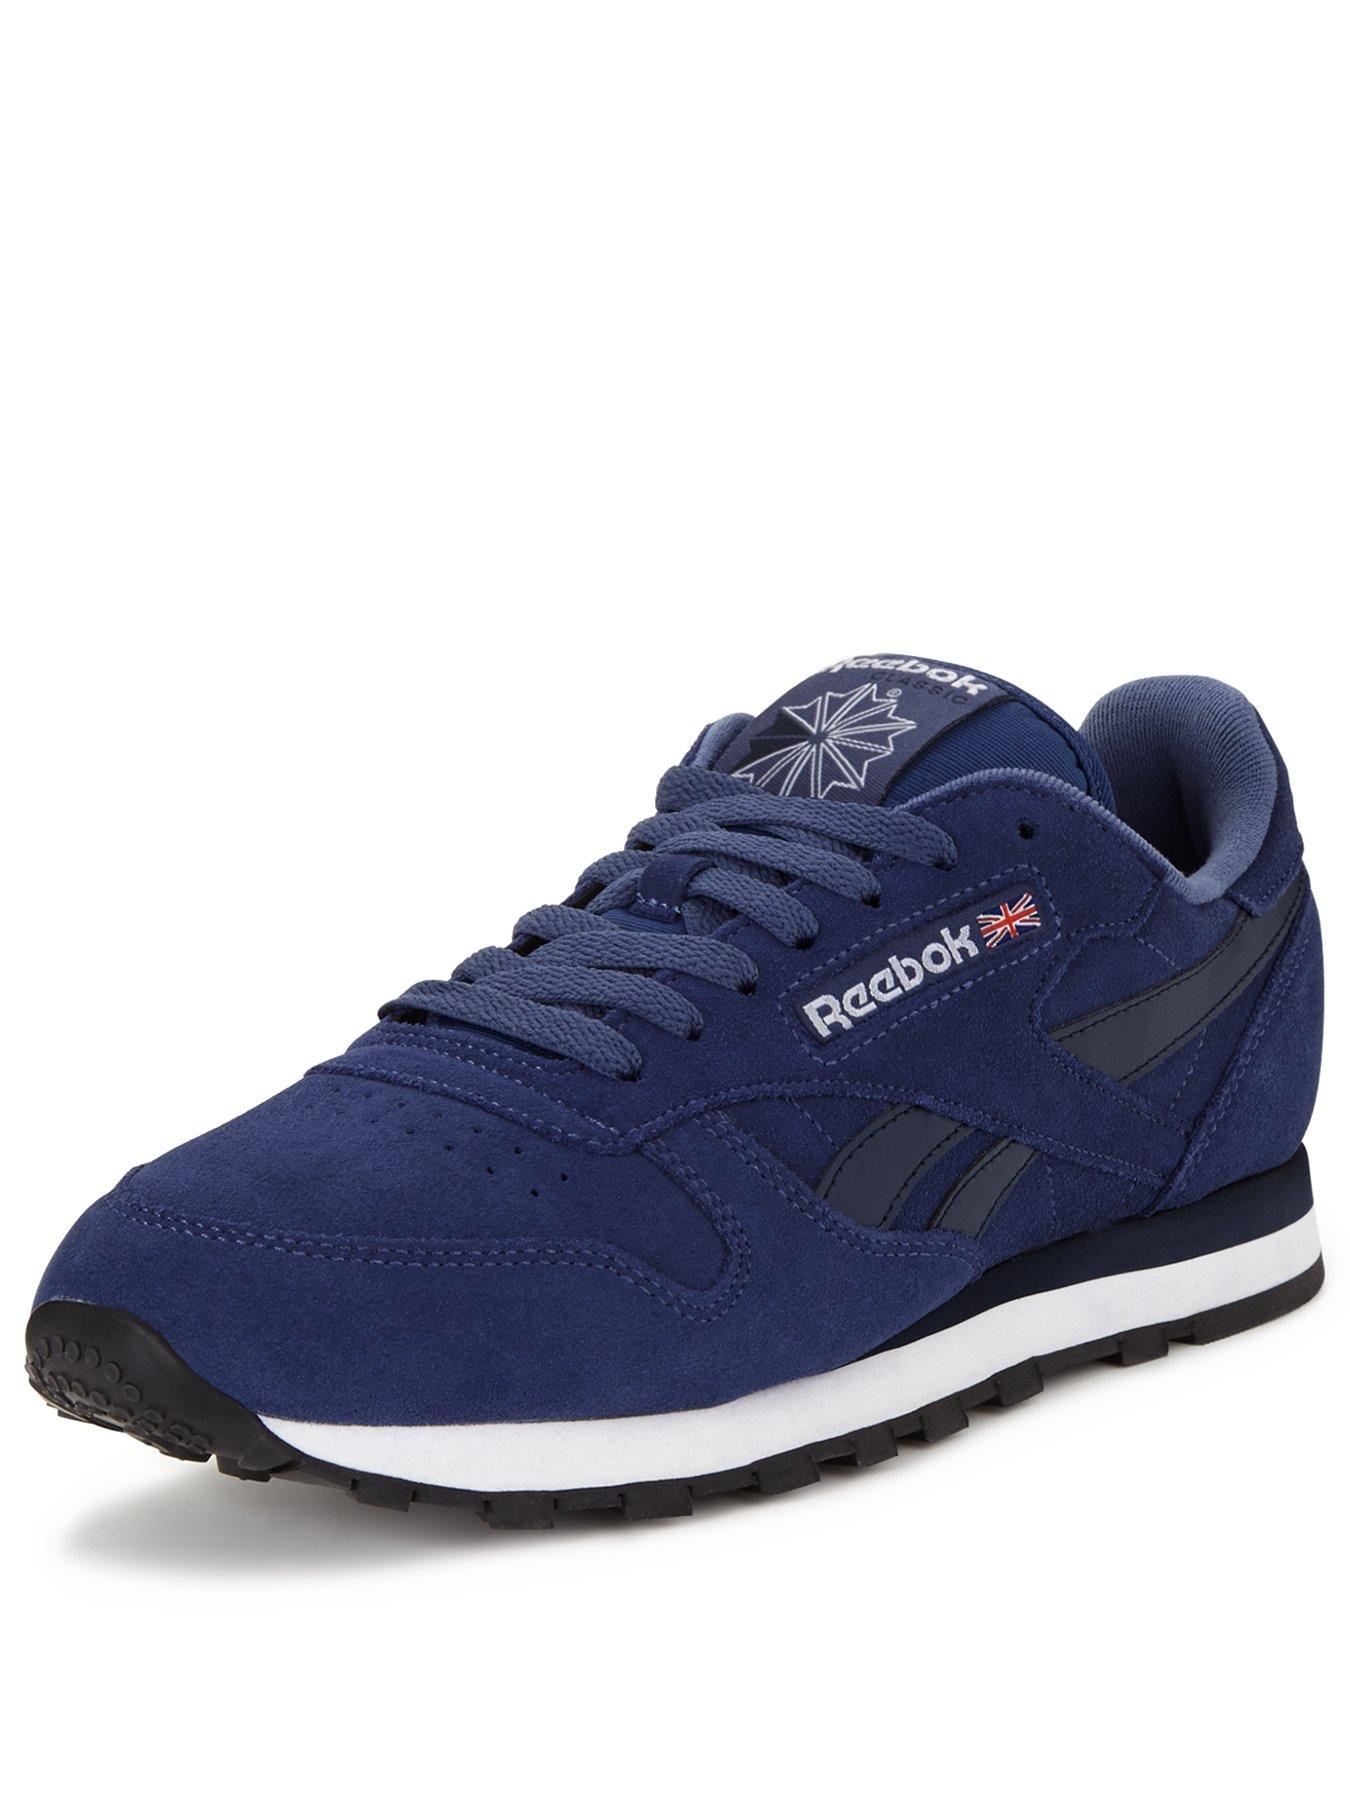 Buy cheap reebok classic trainers   OFF56% Discounted d59a00db5